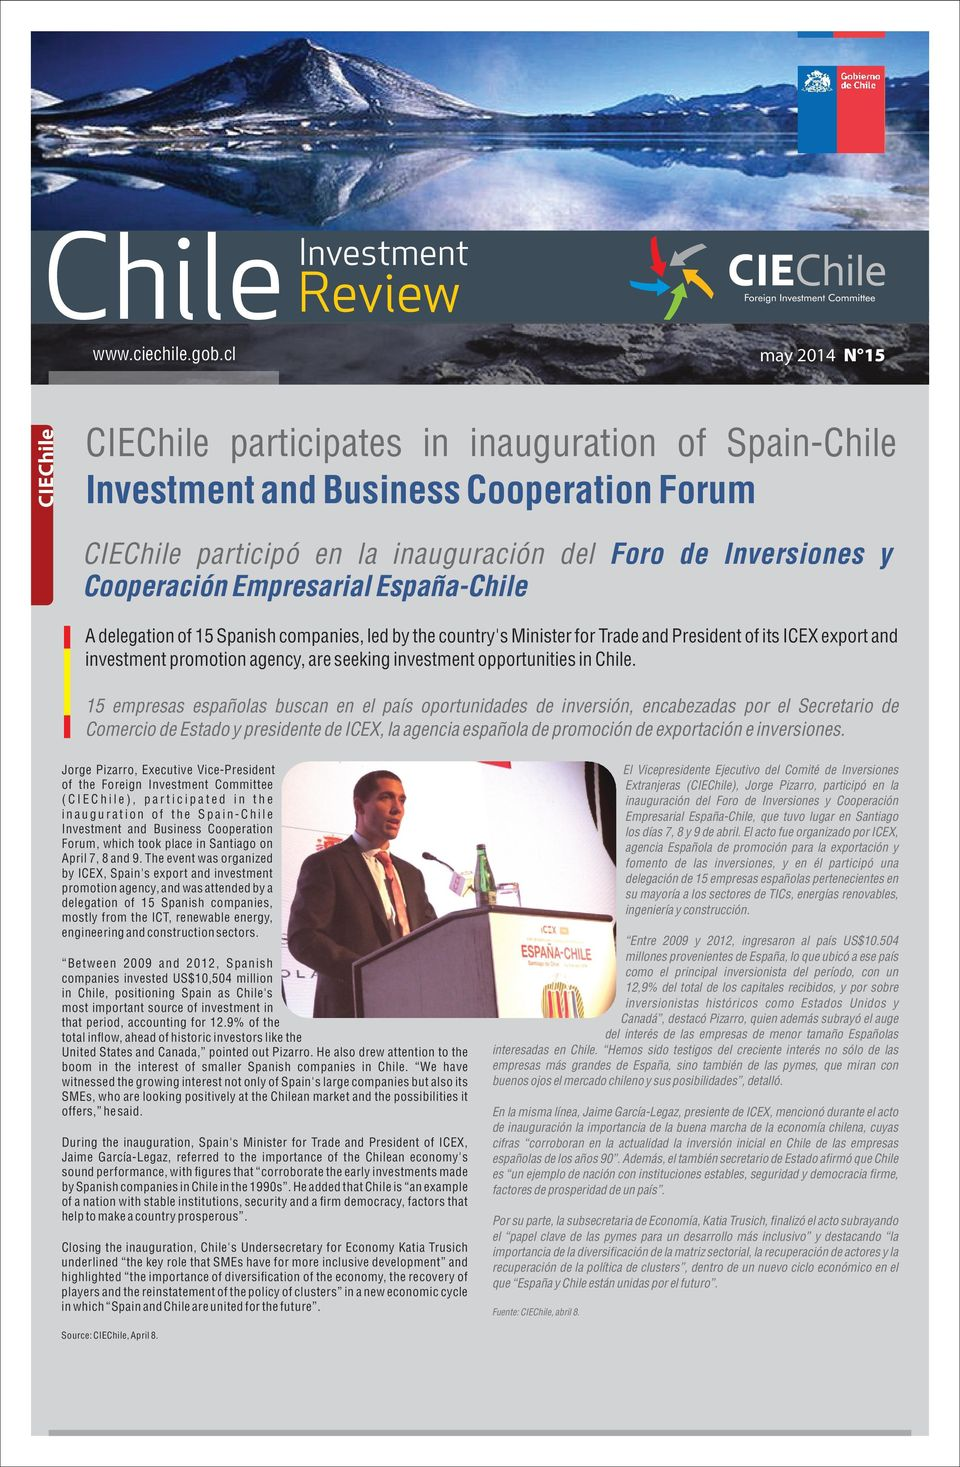 delegation of 15 Spanish companies, led by the country's Minister for Trade and President of its ICEX export and investment promotion agency, are seeking investment opportunities in Chile.